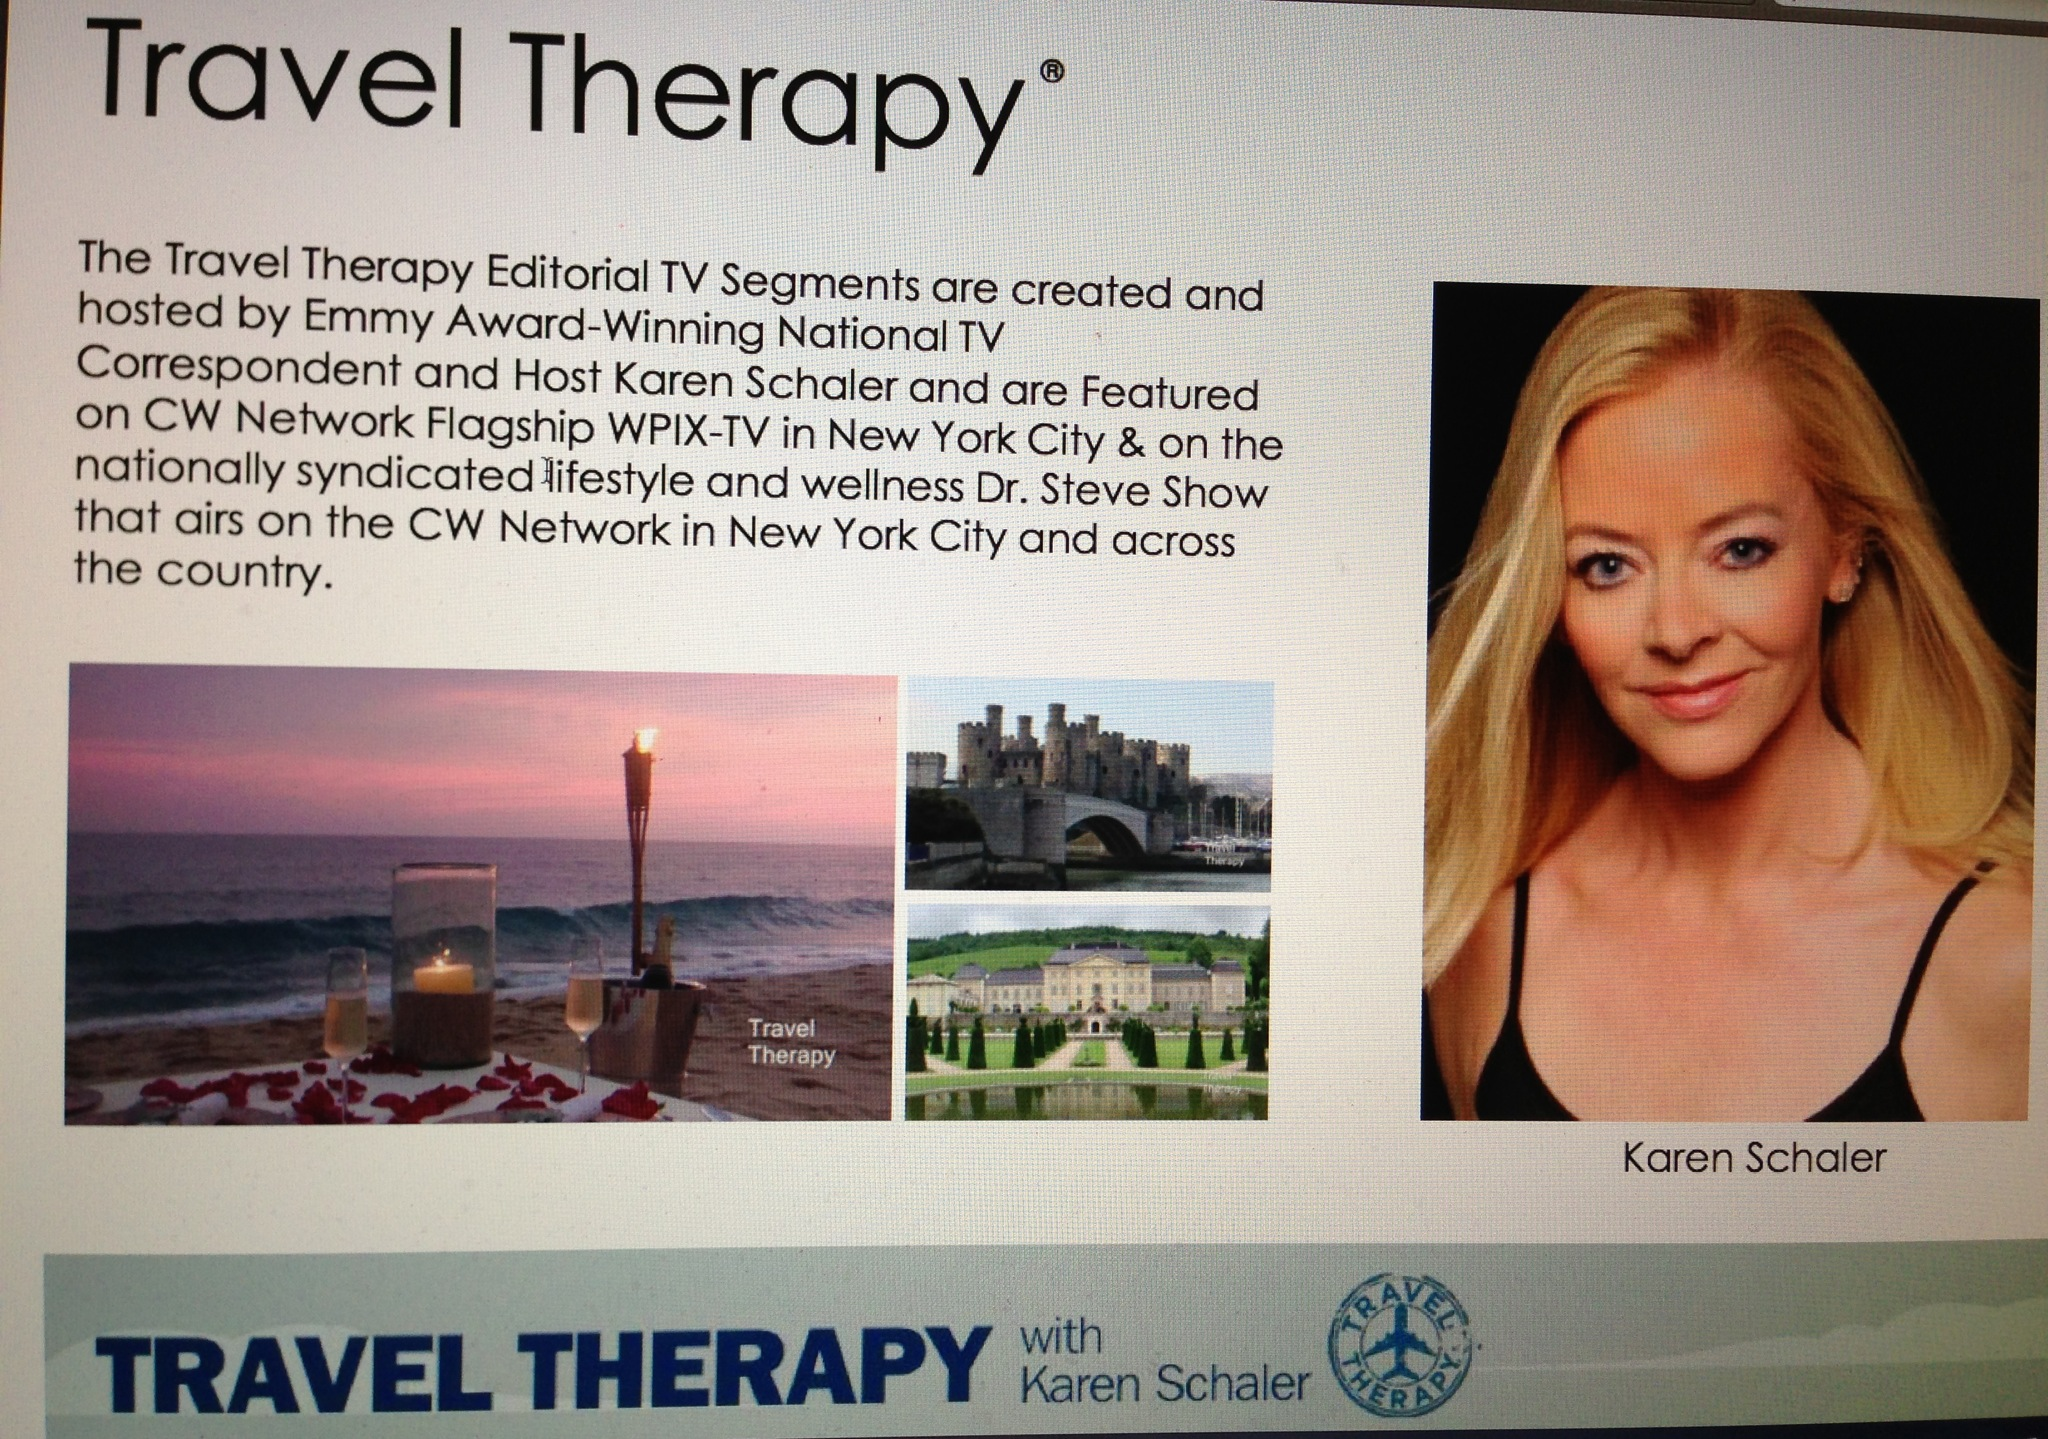 Travel Therapy Media Kit